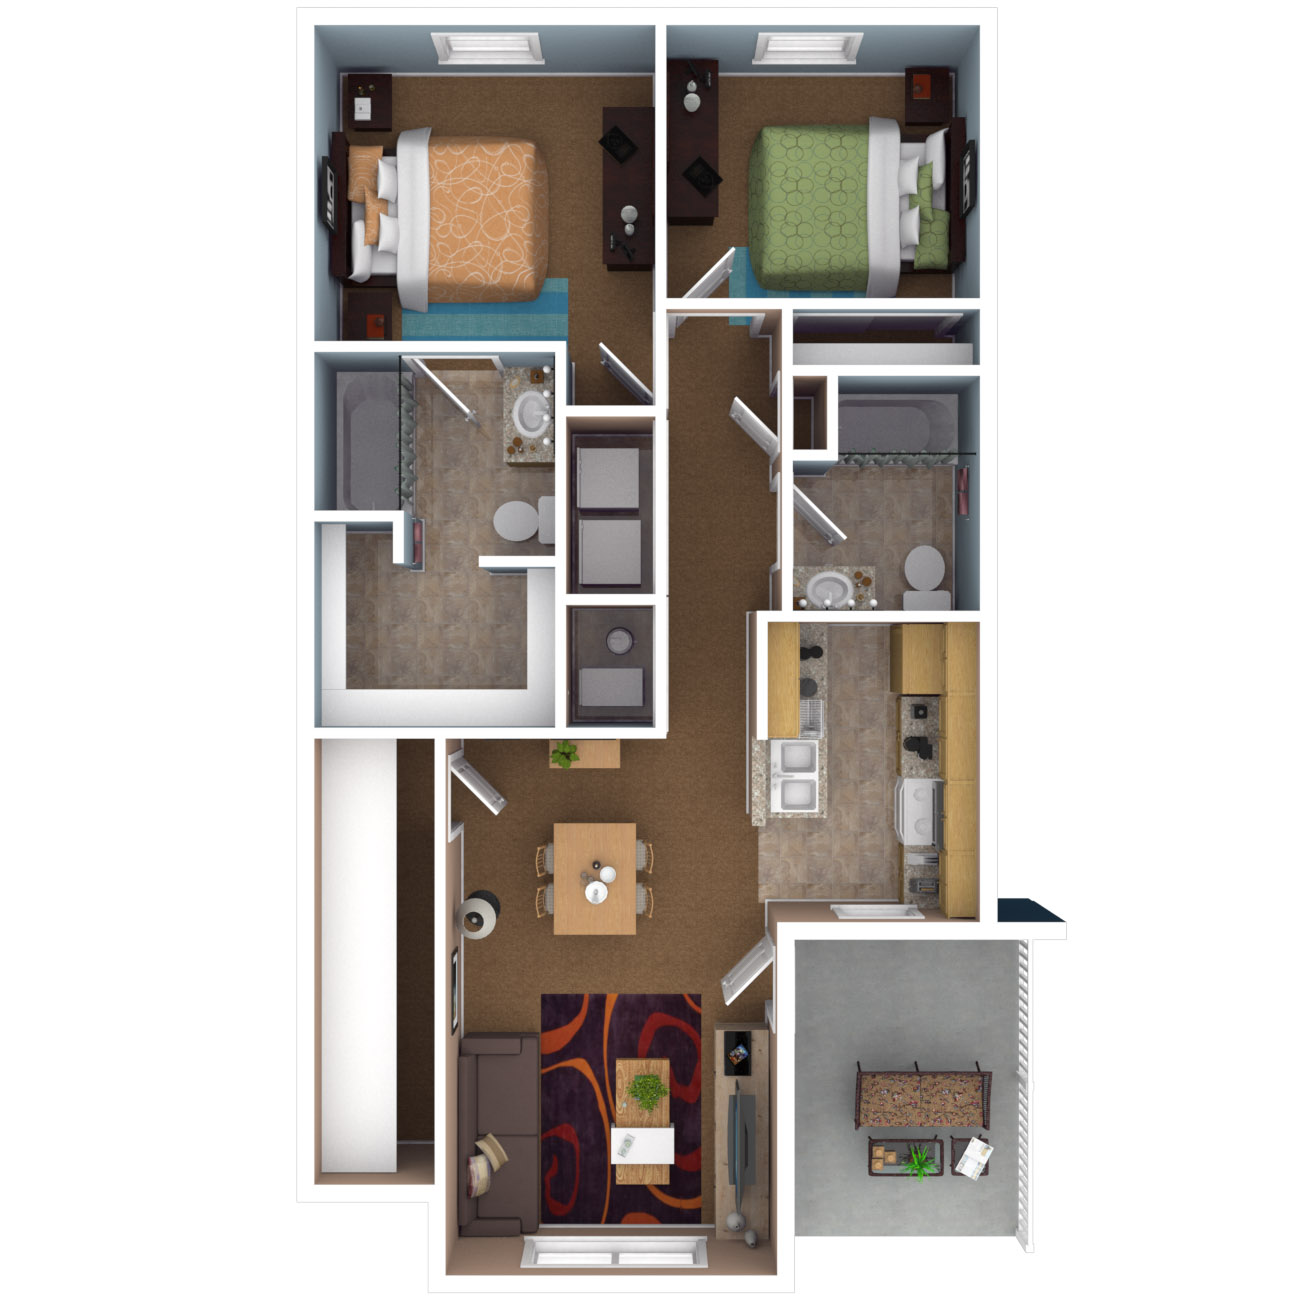 Apartments in indianapolis floor plans for Design apartment 2 budapest